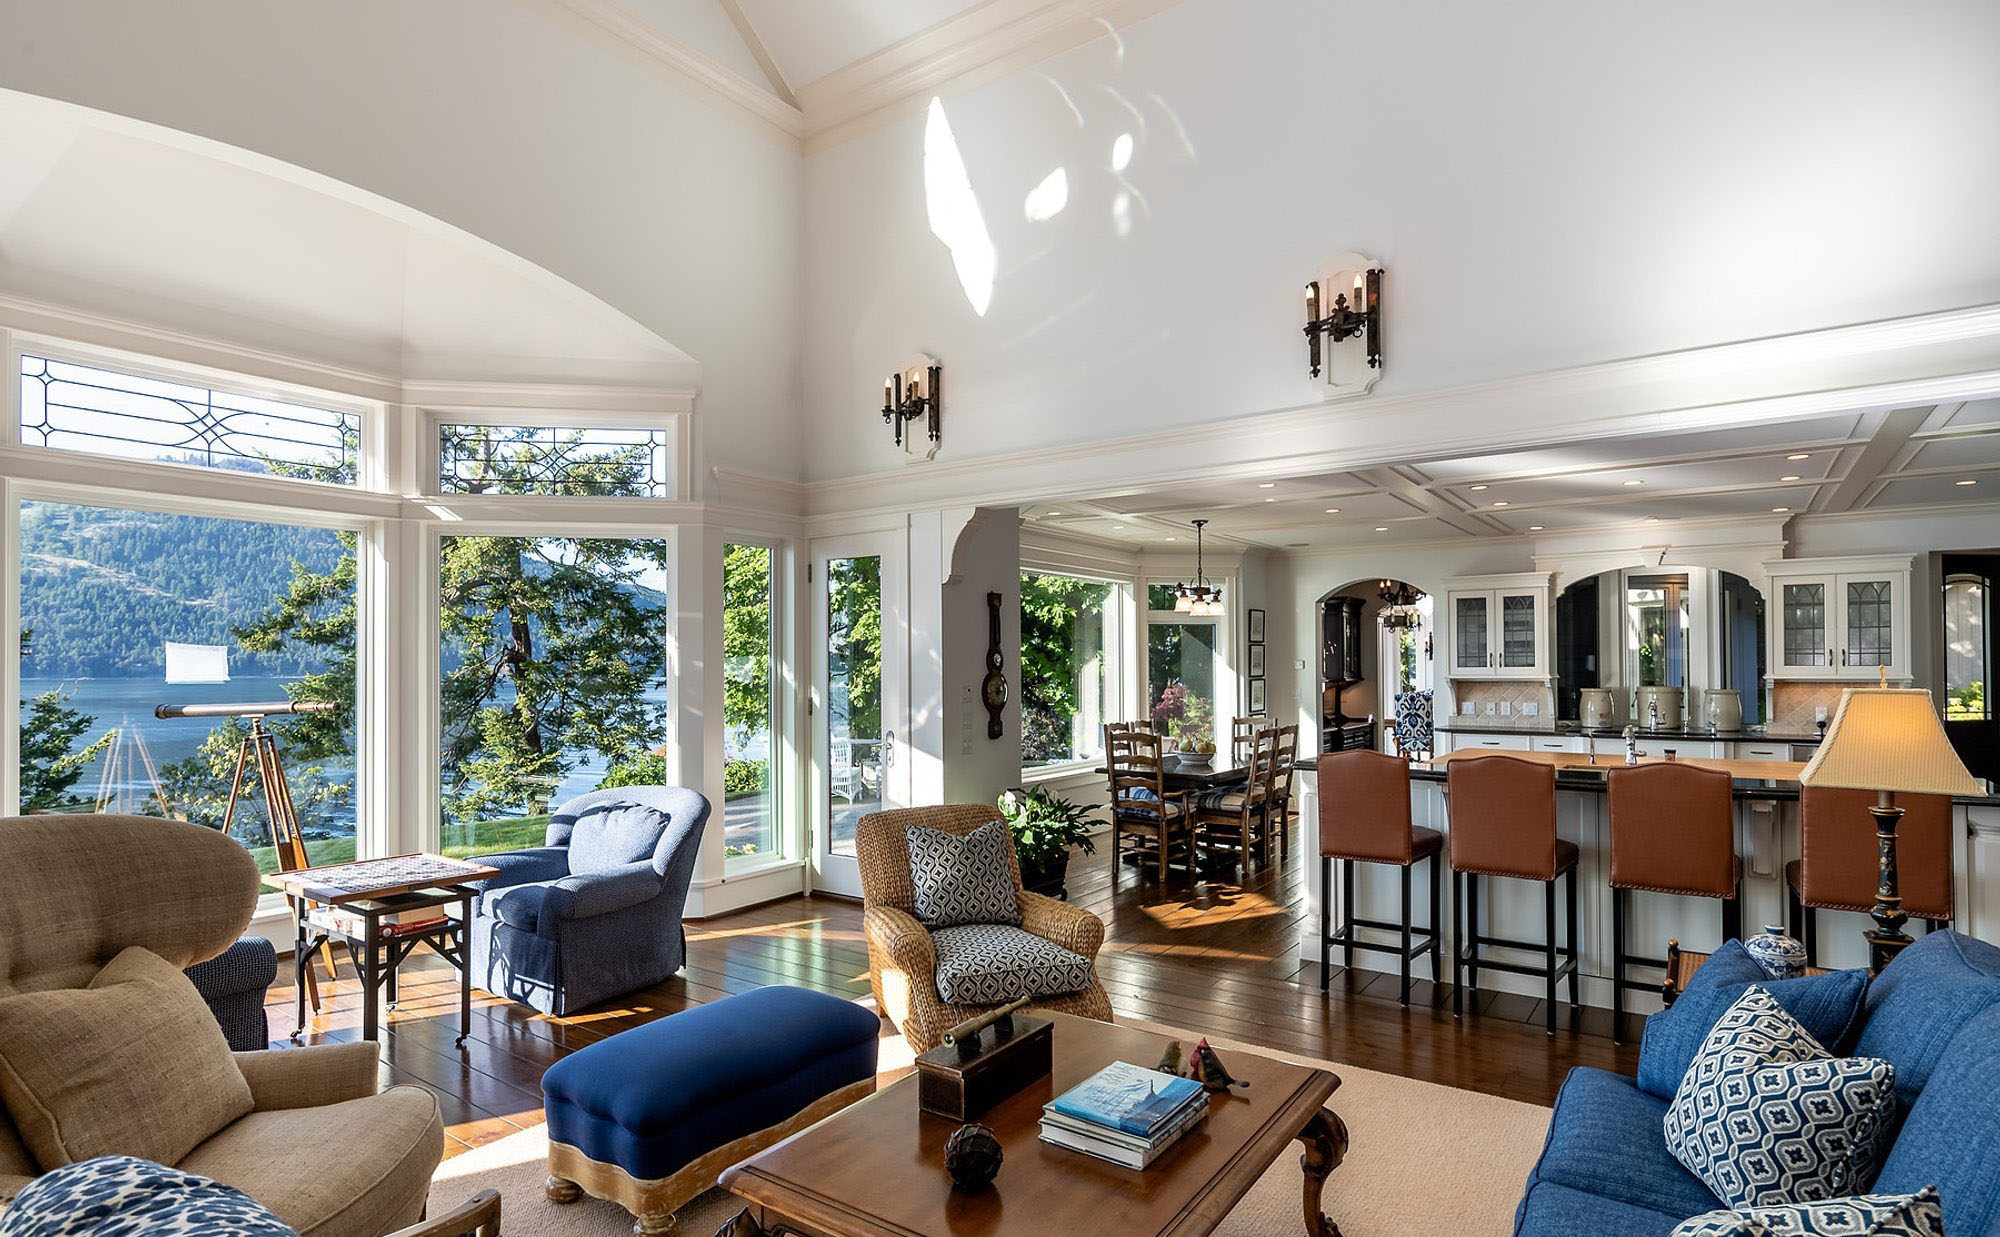 This beautiful lake house features vaulted ceiling finished with trim.